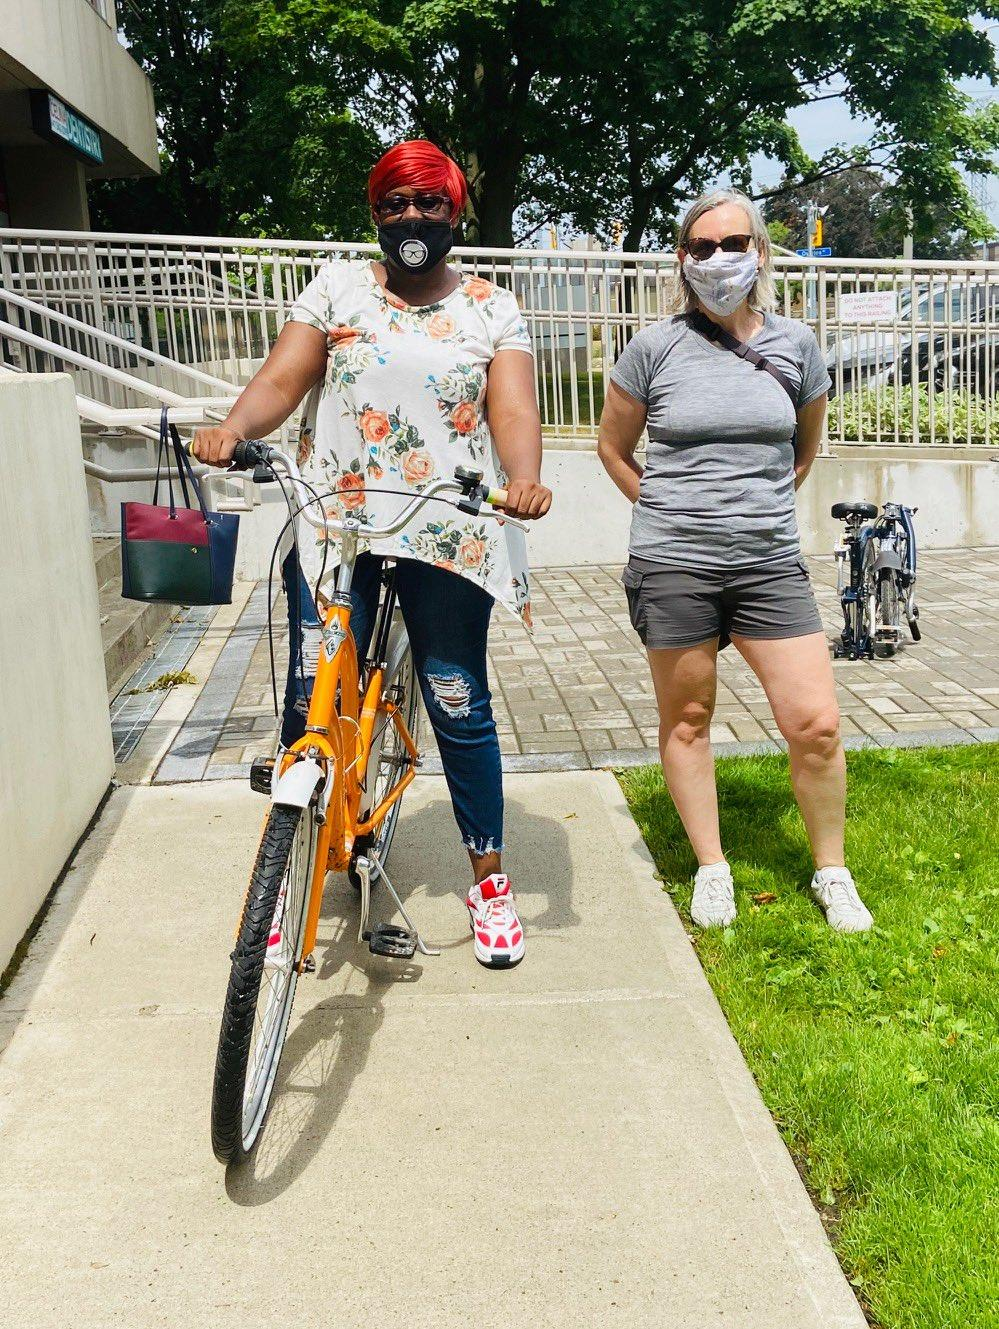 Two women with masks on pose. The woman on the left stands over a new looking orange bike.